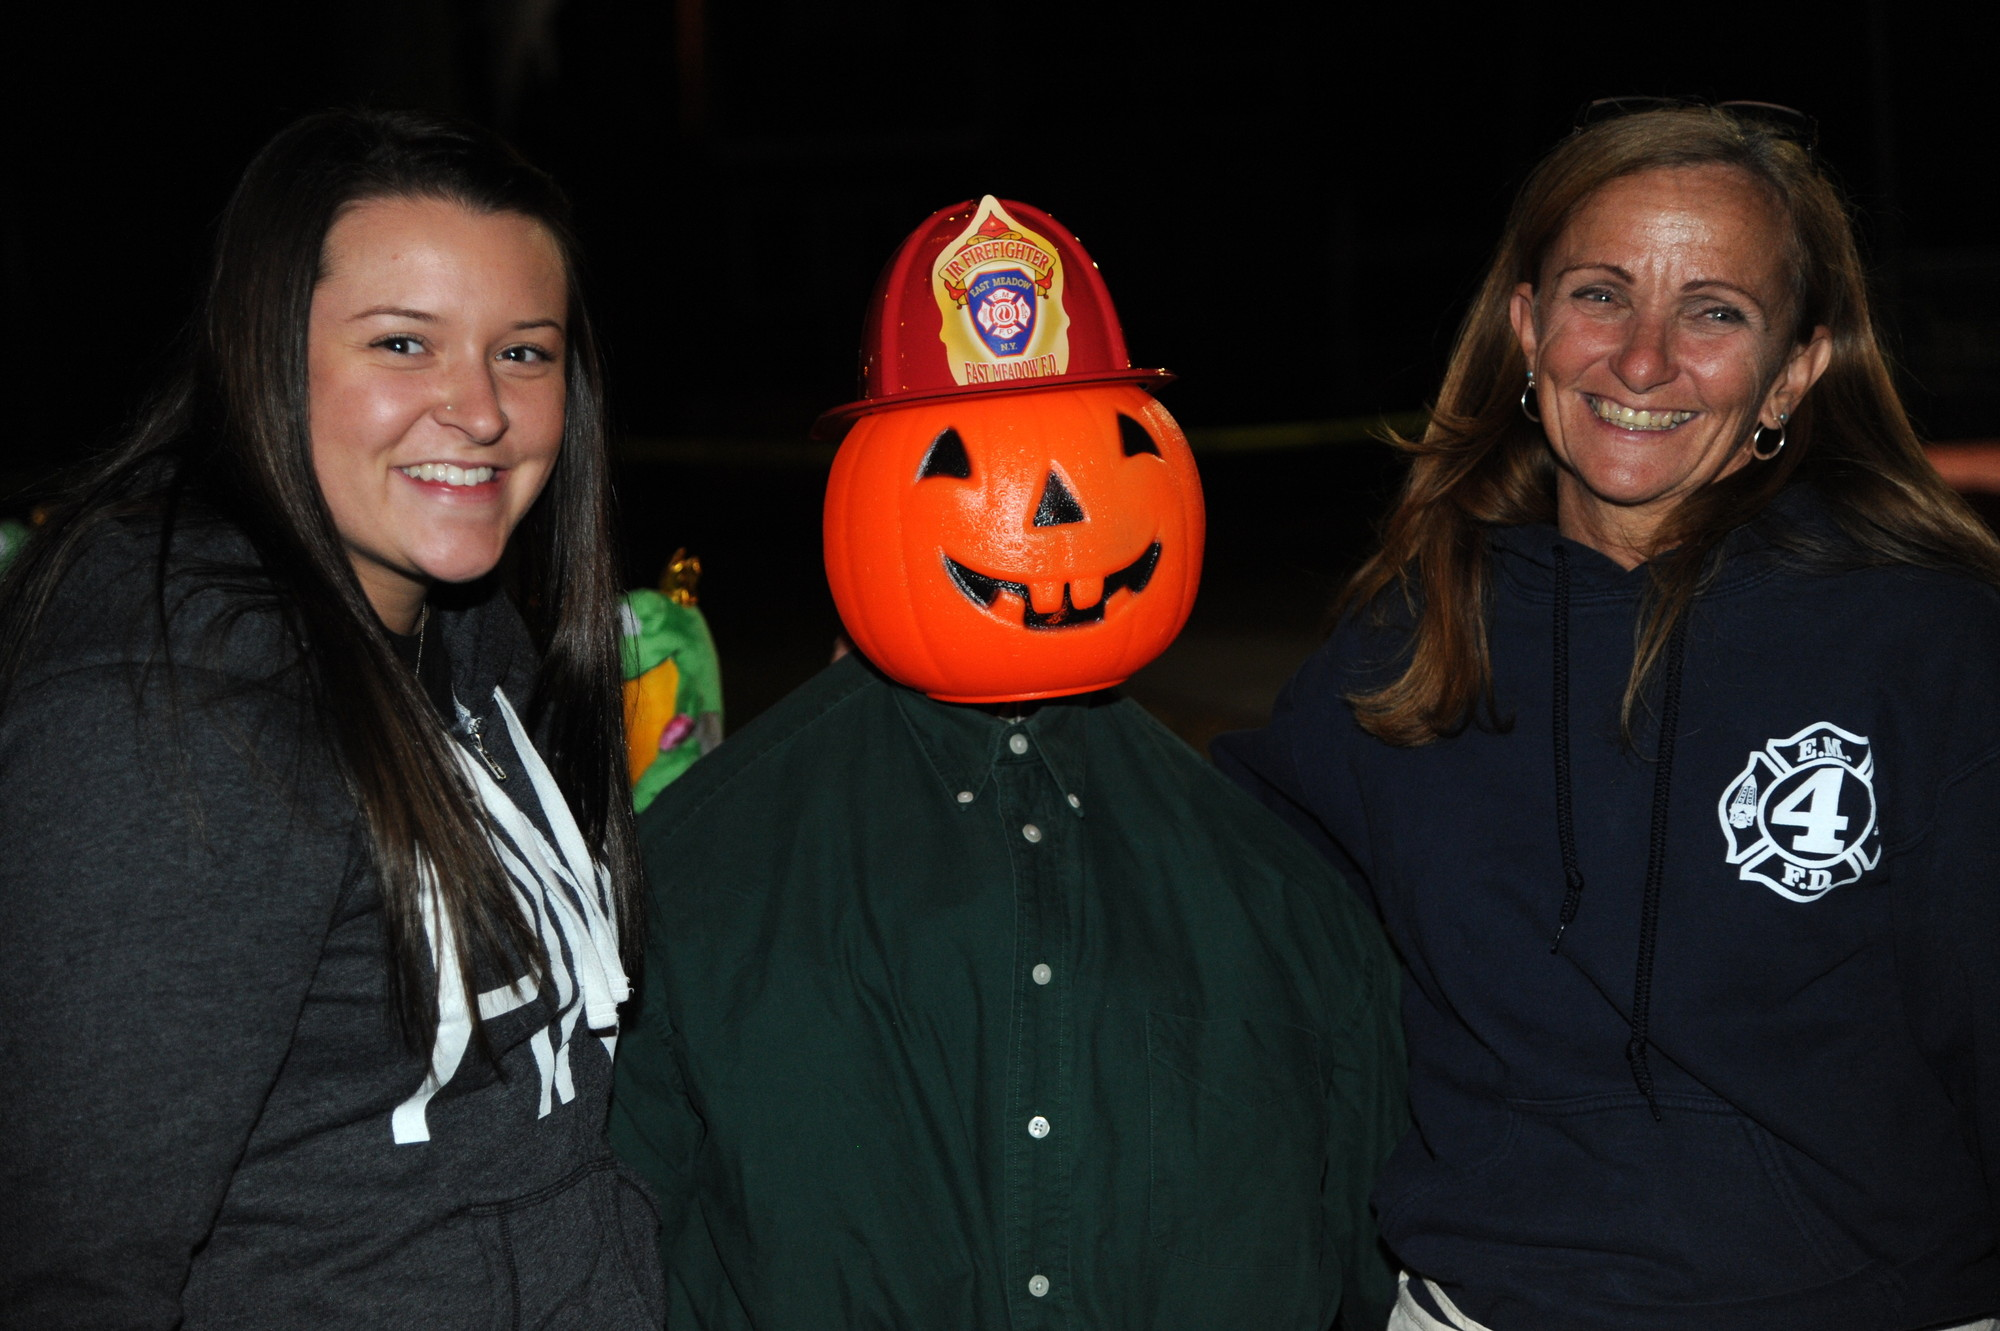 East Meadow Fire Department volunteers Amanda Bautista and Diane Tronolone posed with a pumpkin-headed scarecrow during the Station 4 festival in Salisbury last weekend.